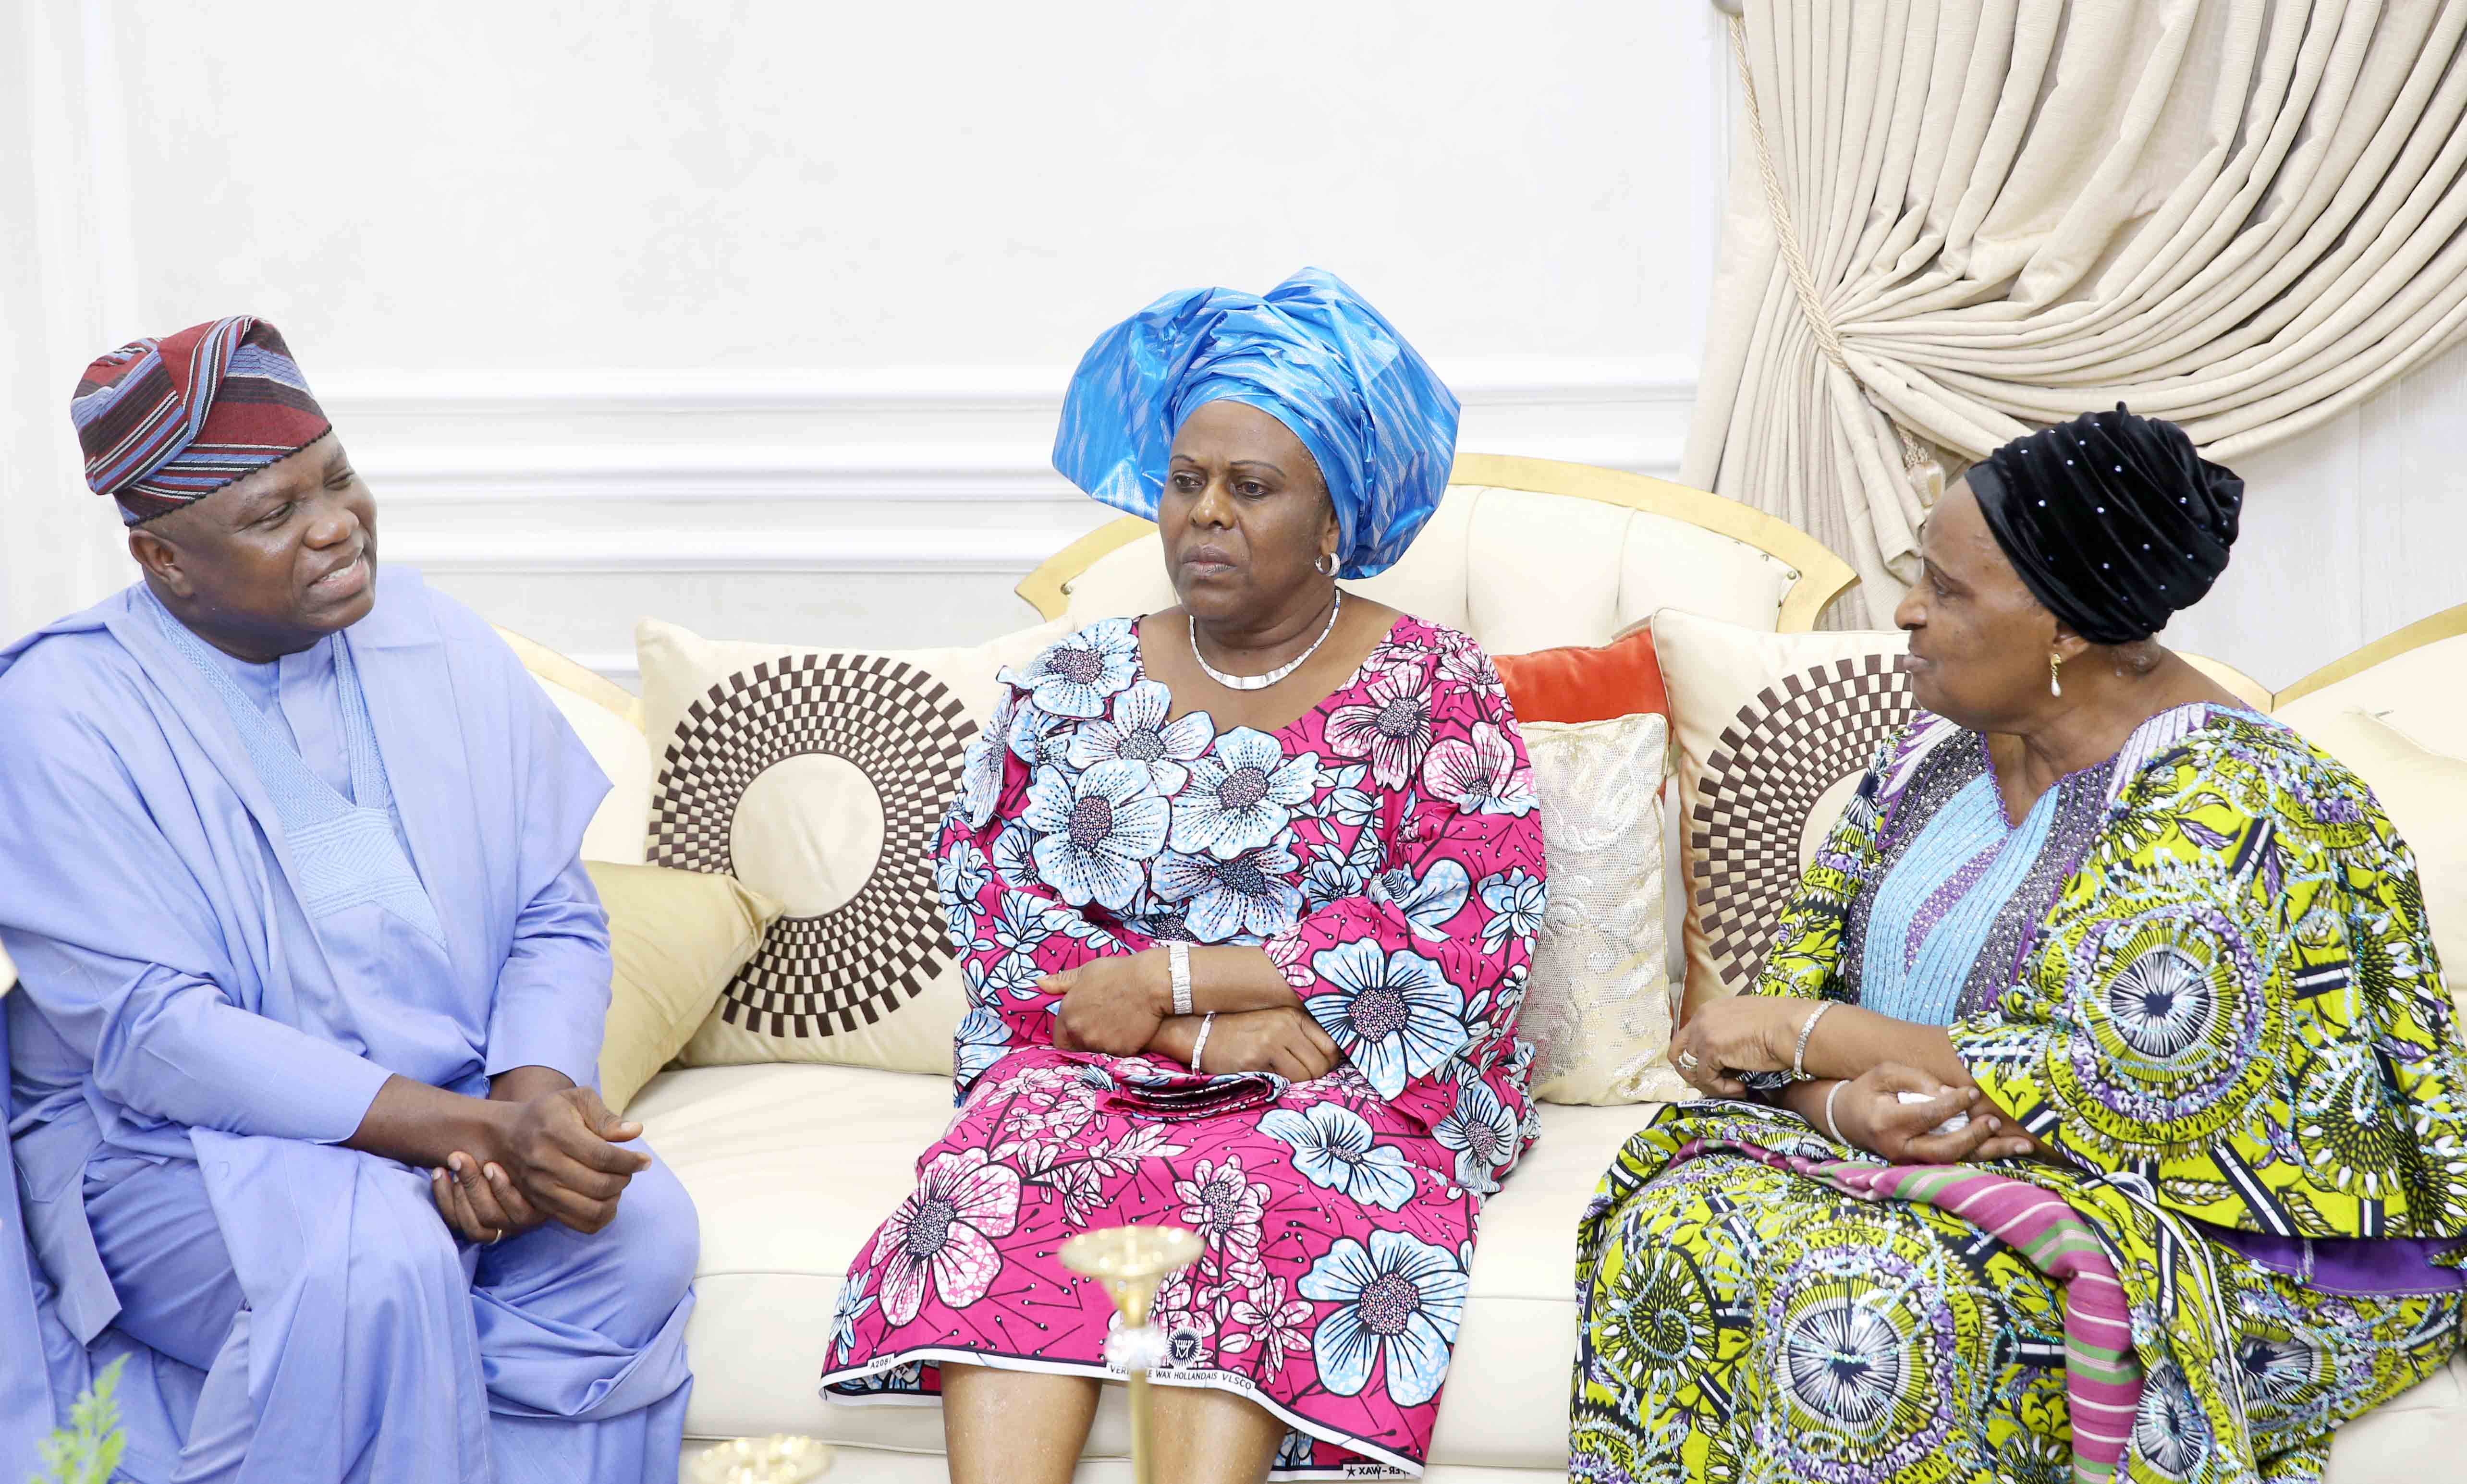 Lagos State Governor, Mr. Akinwunmi Ambode, with Ambassador Tokunbo Awolowo-Dosunmu and daughter of Chief Obafemi Awolowo, Mrs. Omotola Oyediran during their courtesy visit to the Governor at the Lagos House, Ikeja, on Tuesday, September 26, 2017.